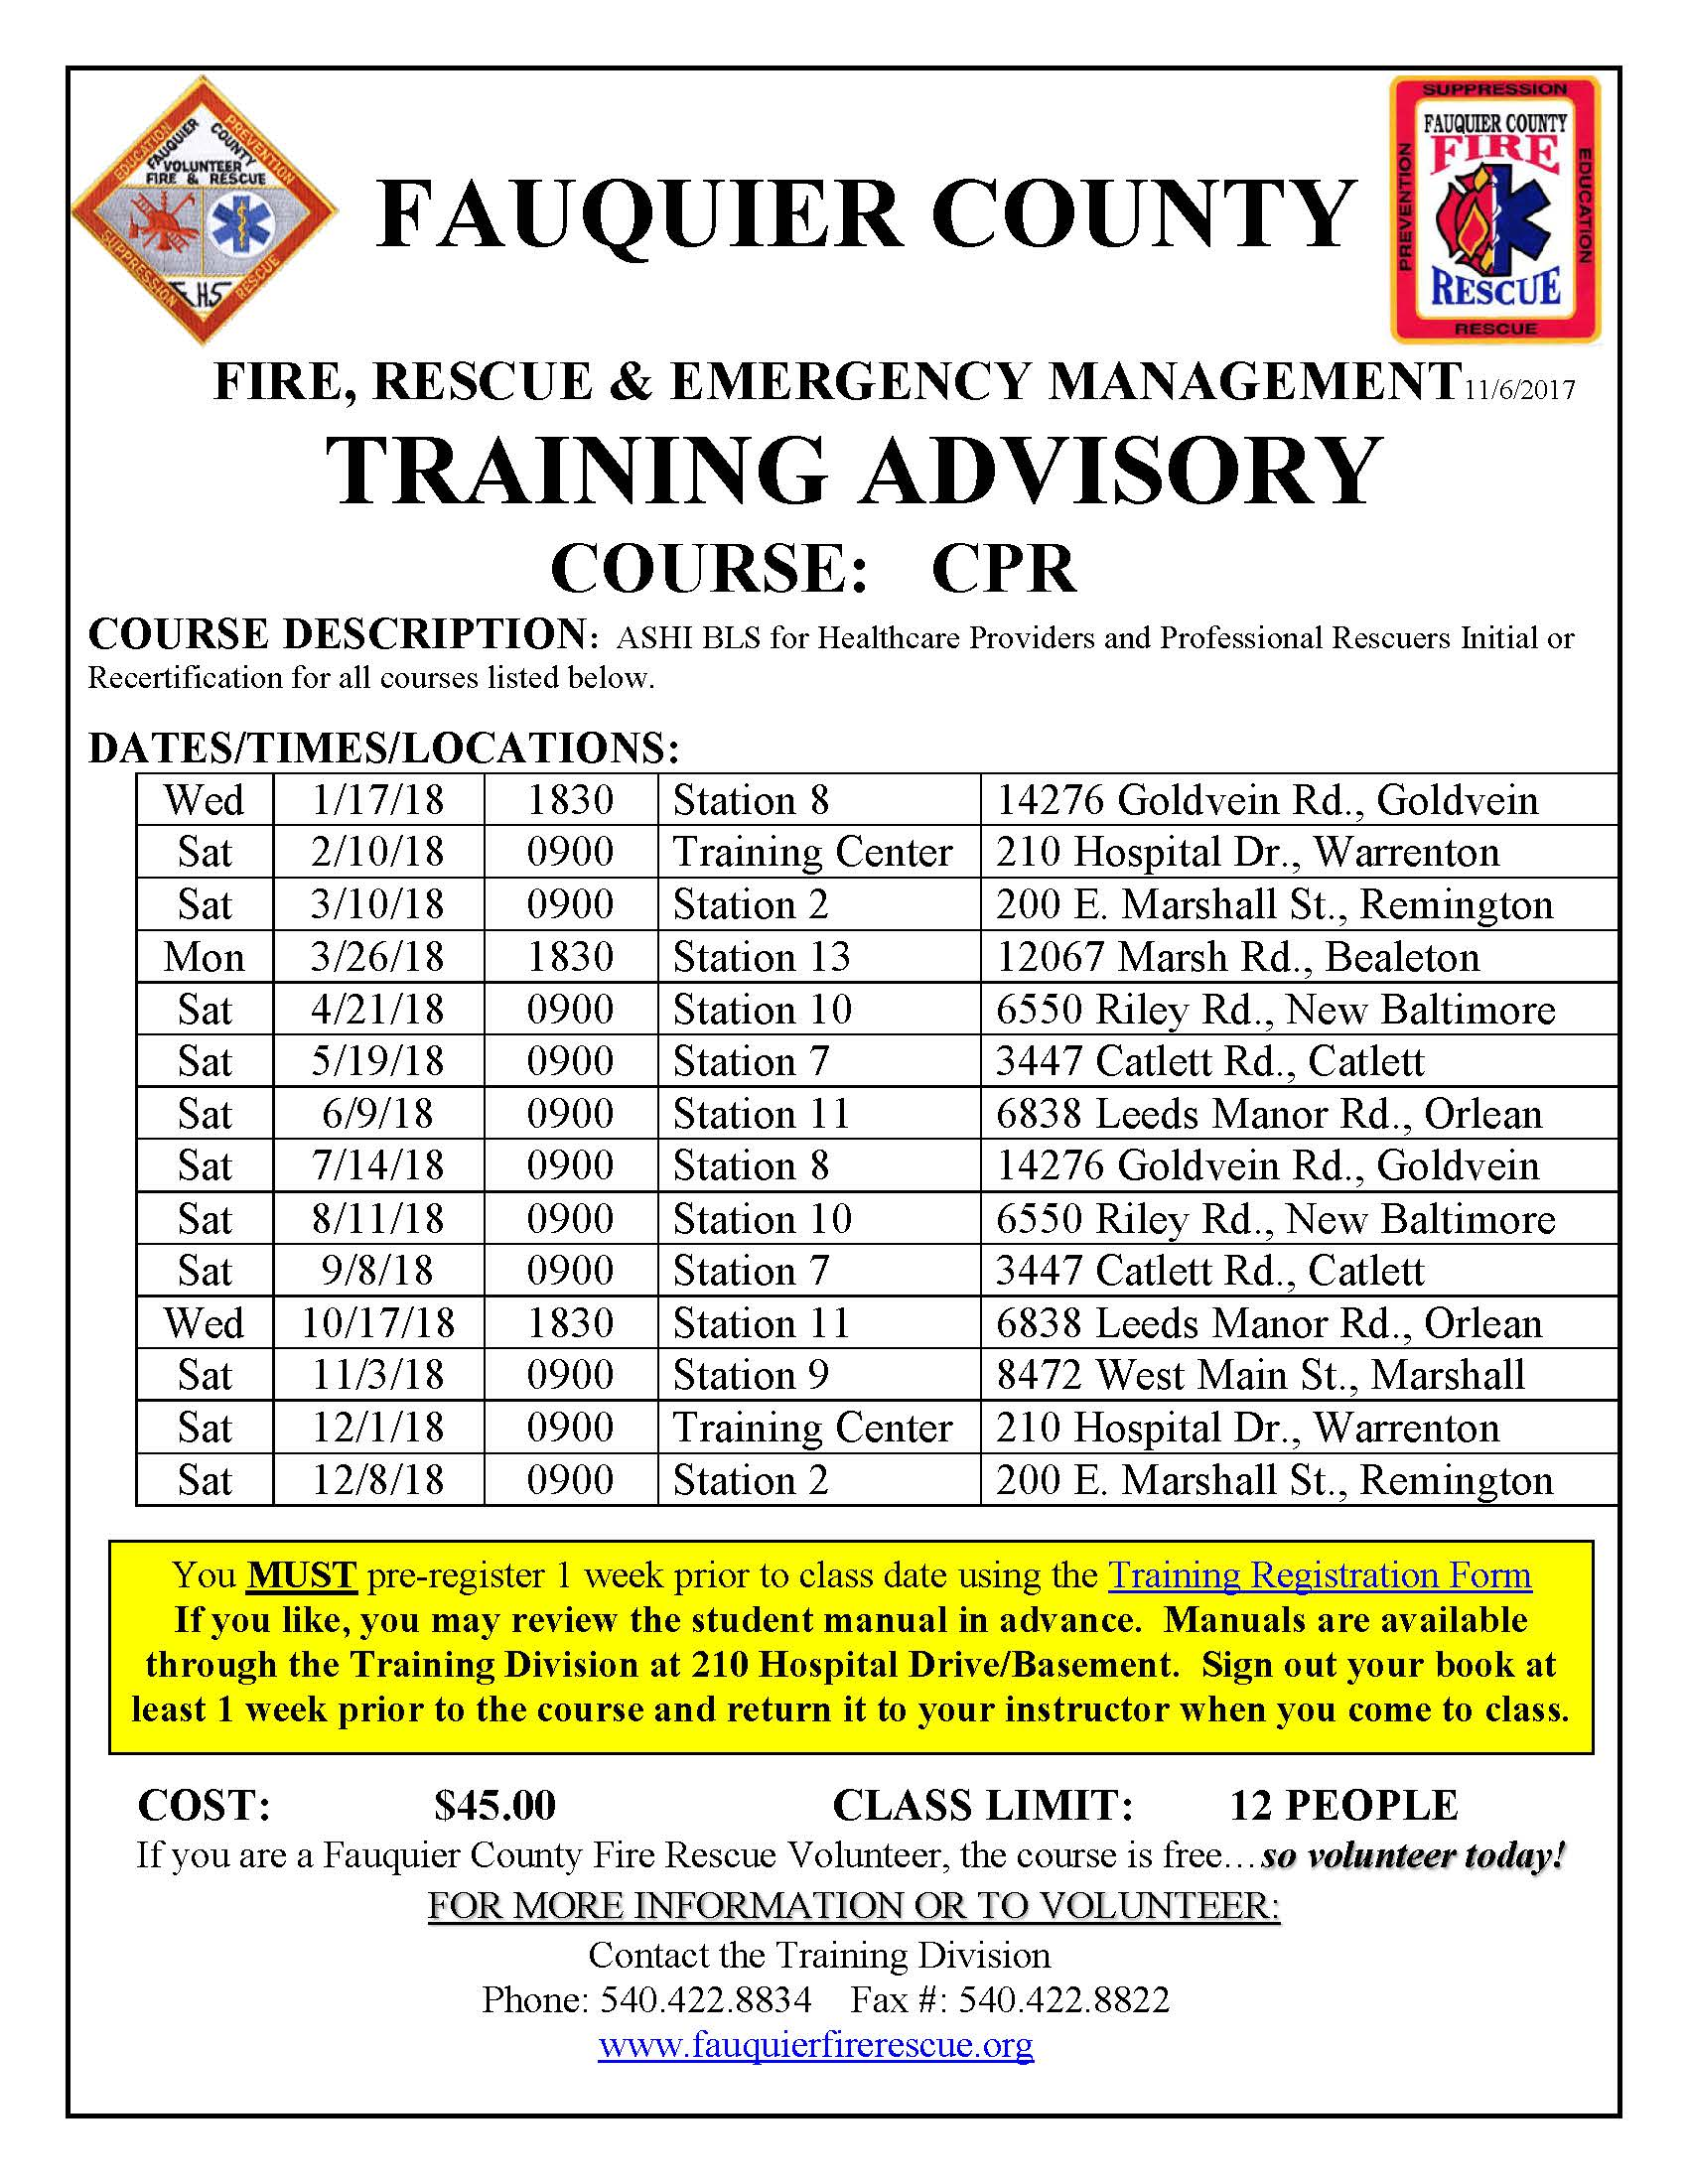 Fauquier county fire rescue fauquier ems training cpr course listing xflitez Images